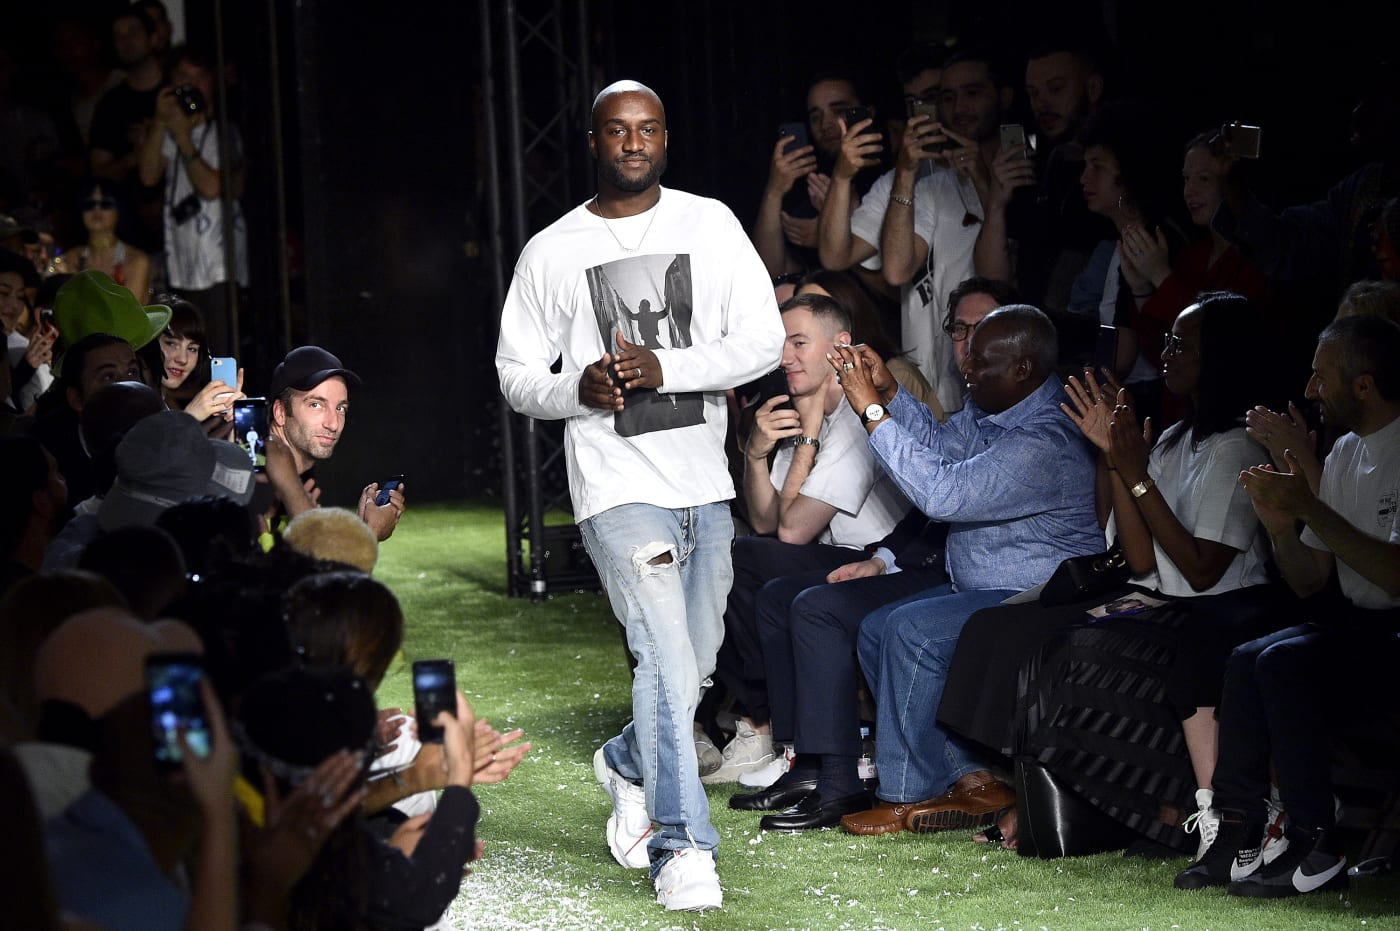 Virgil Abloh at Off White Spring 2019 runway show